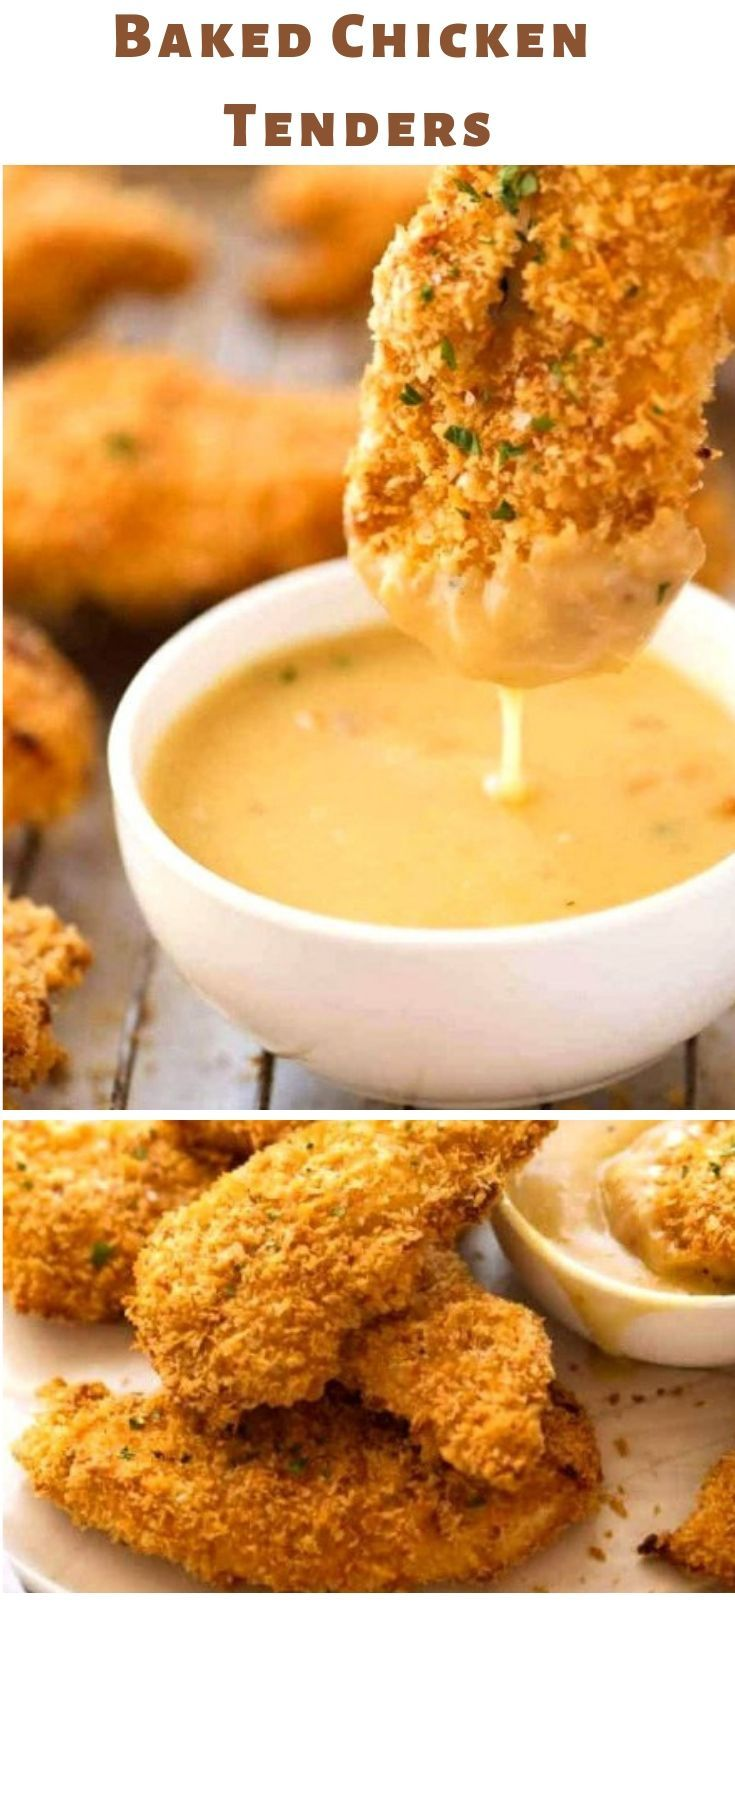 Baked Chicken Tenders images